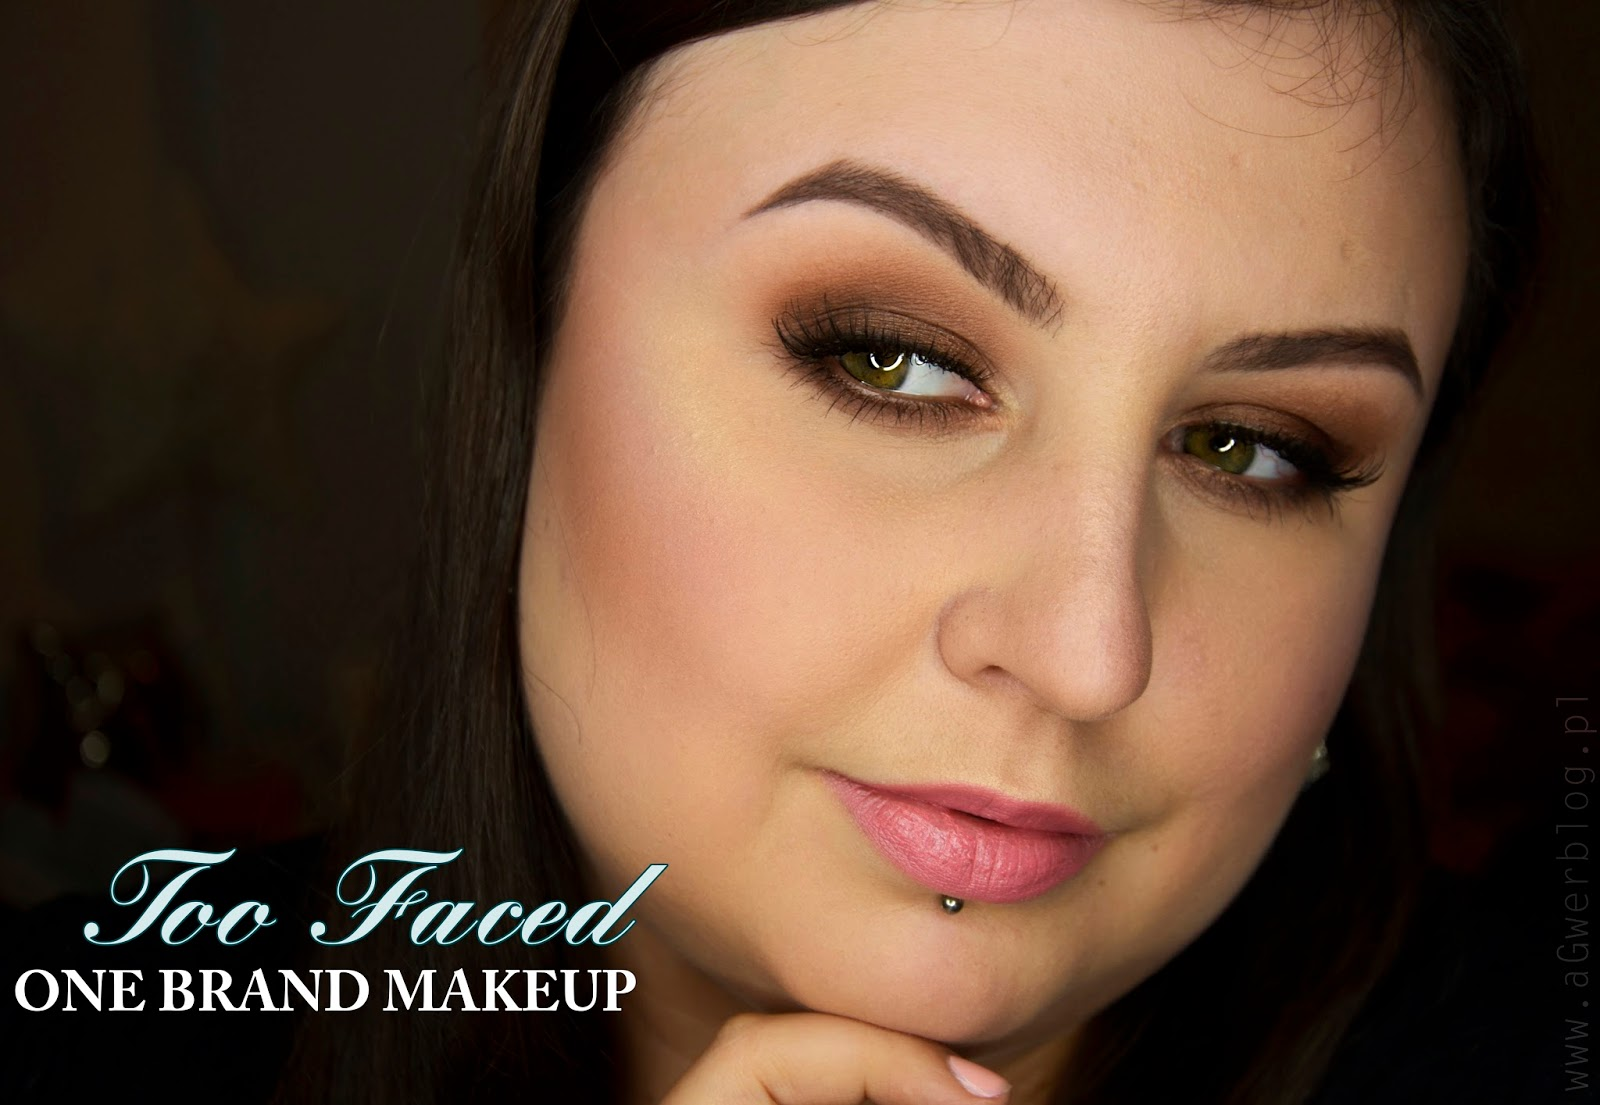 One brand makeup: Too faced | warm smoky